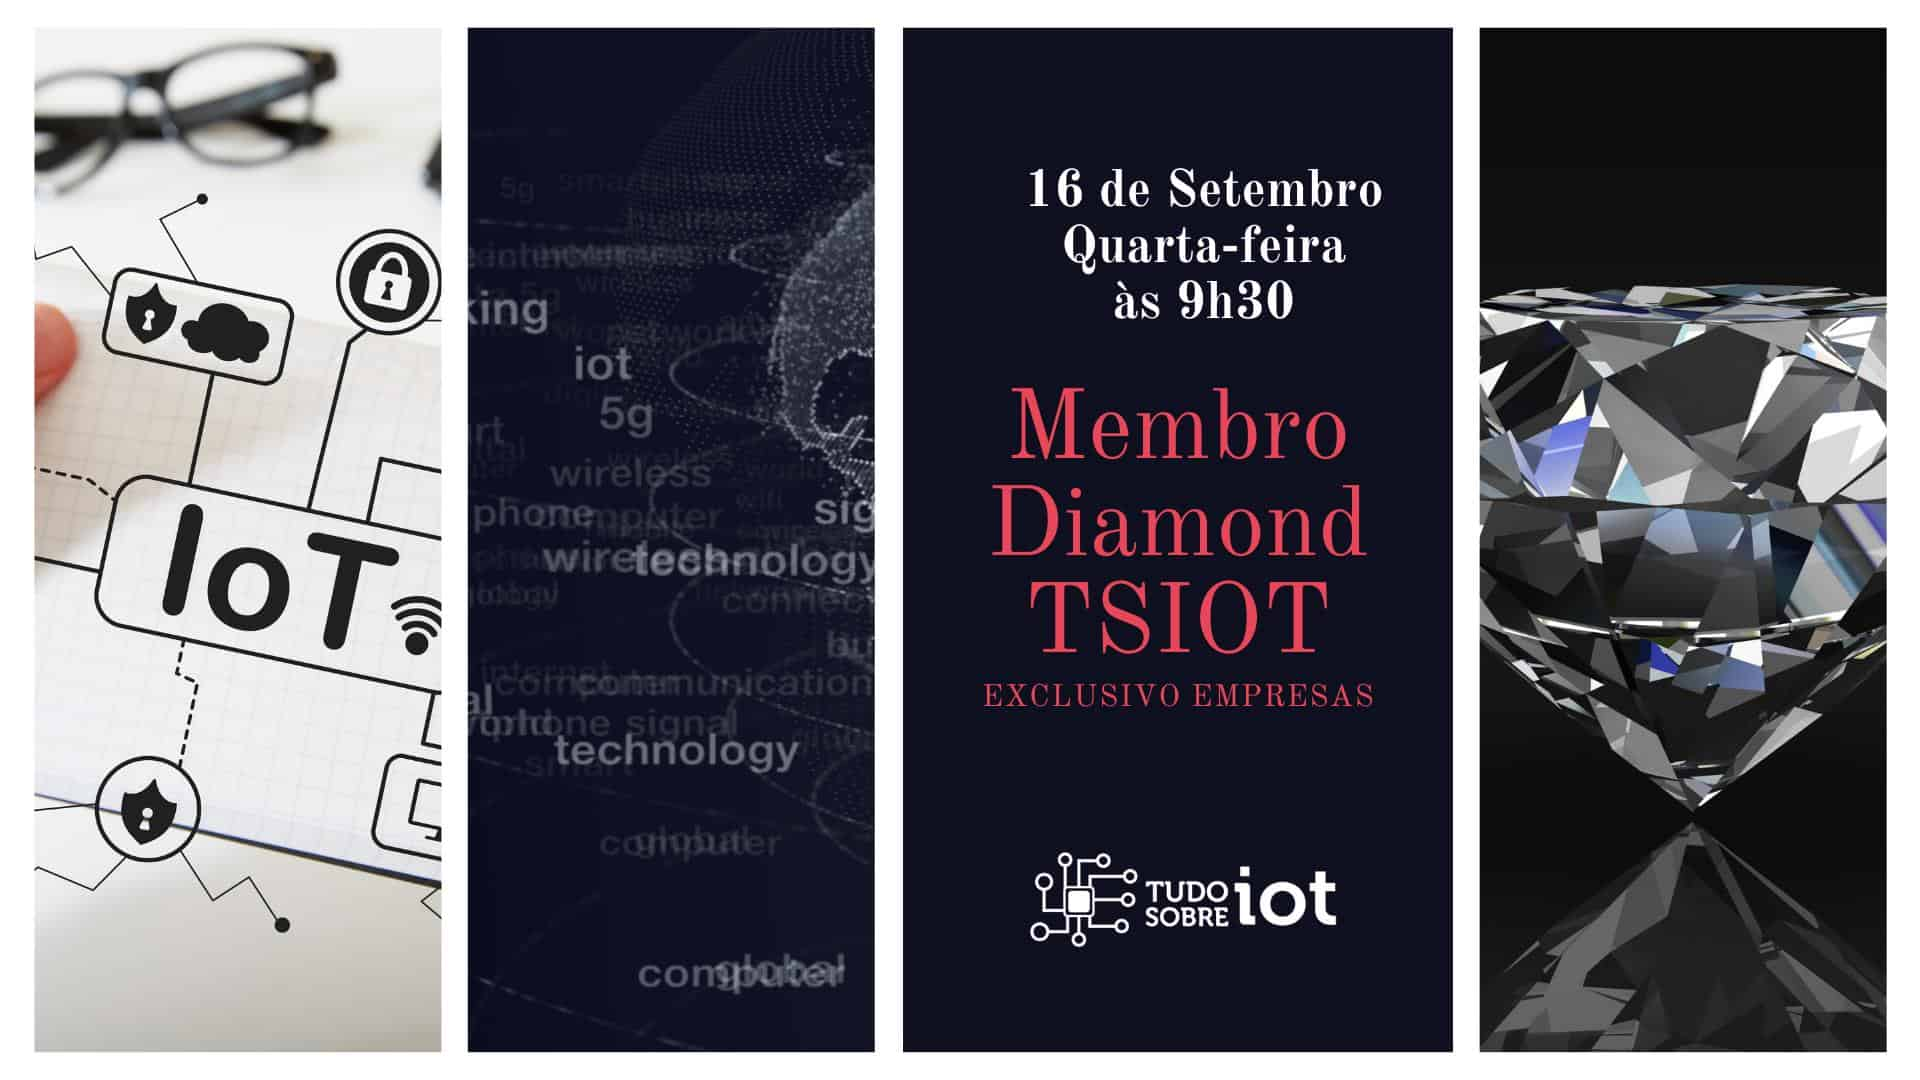 Evento para Membro Diamond TSIOT